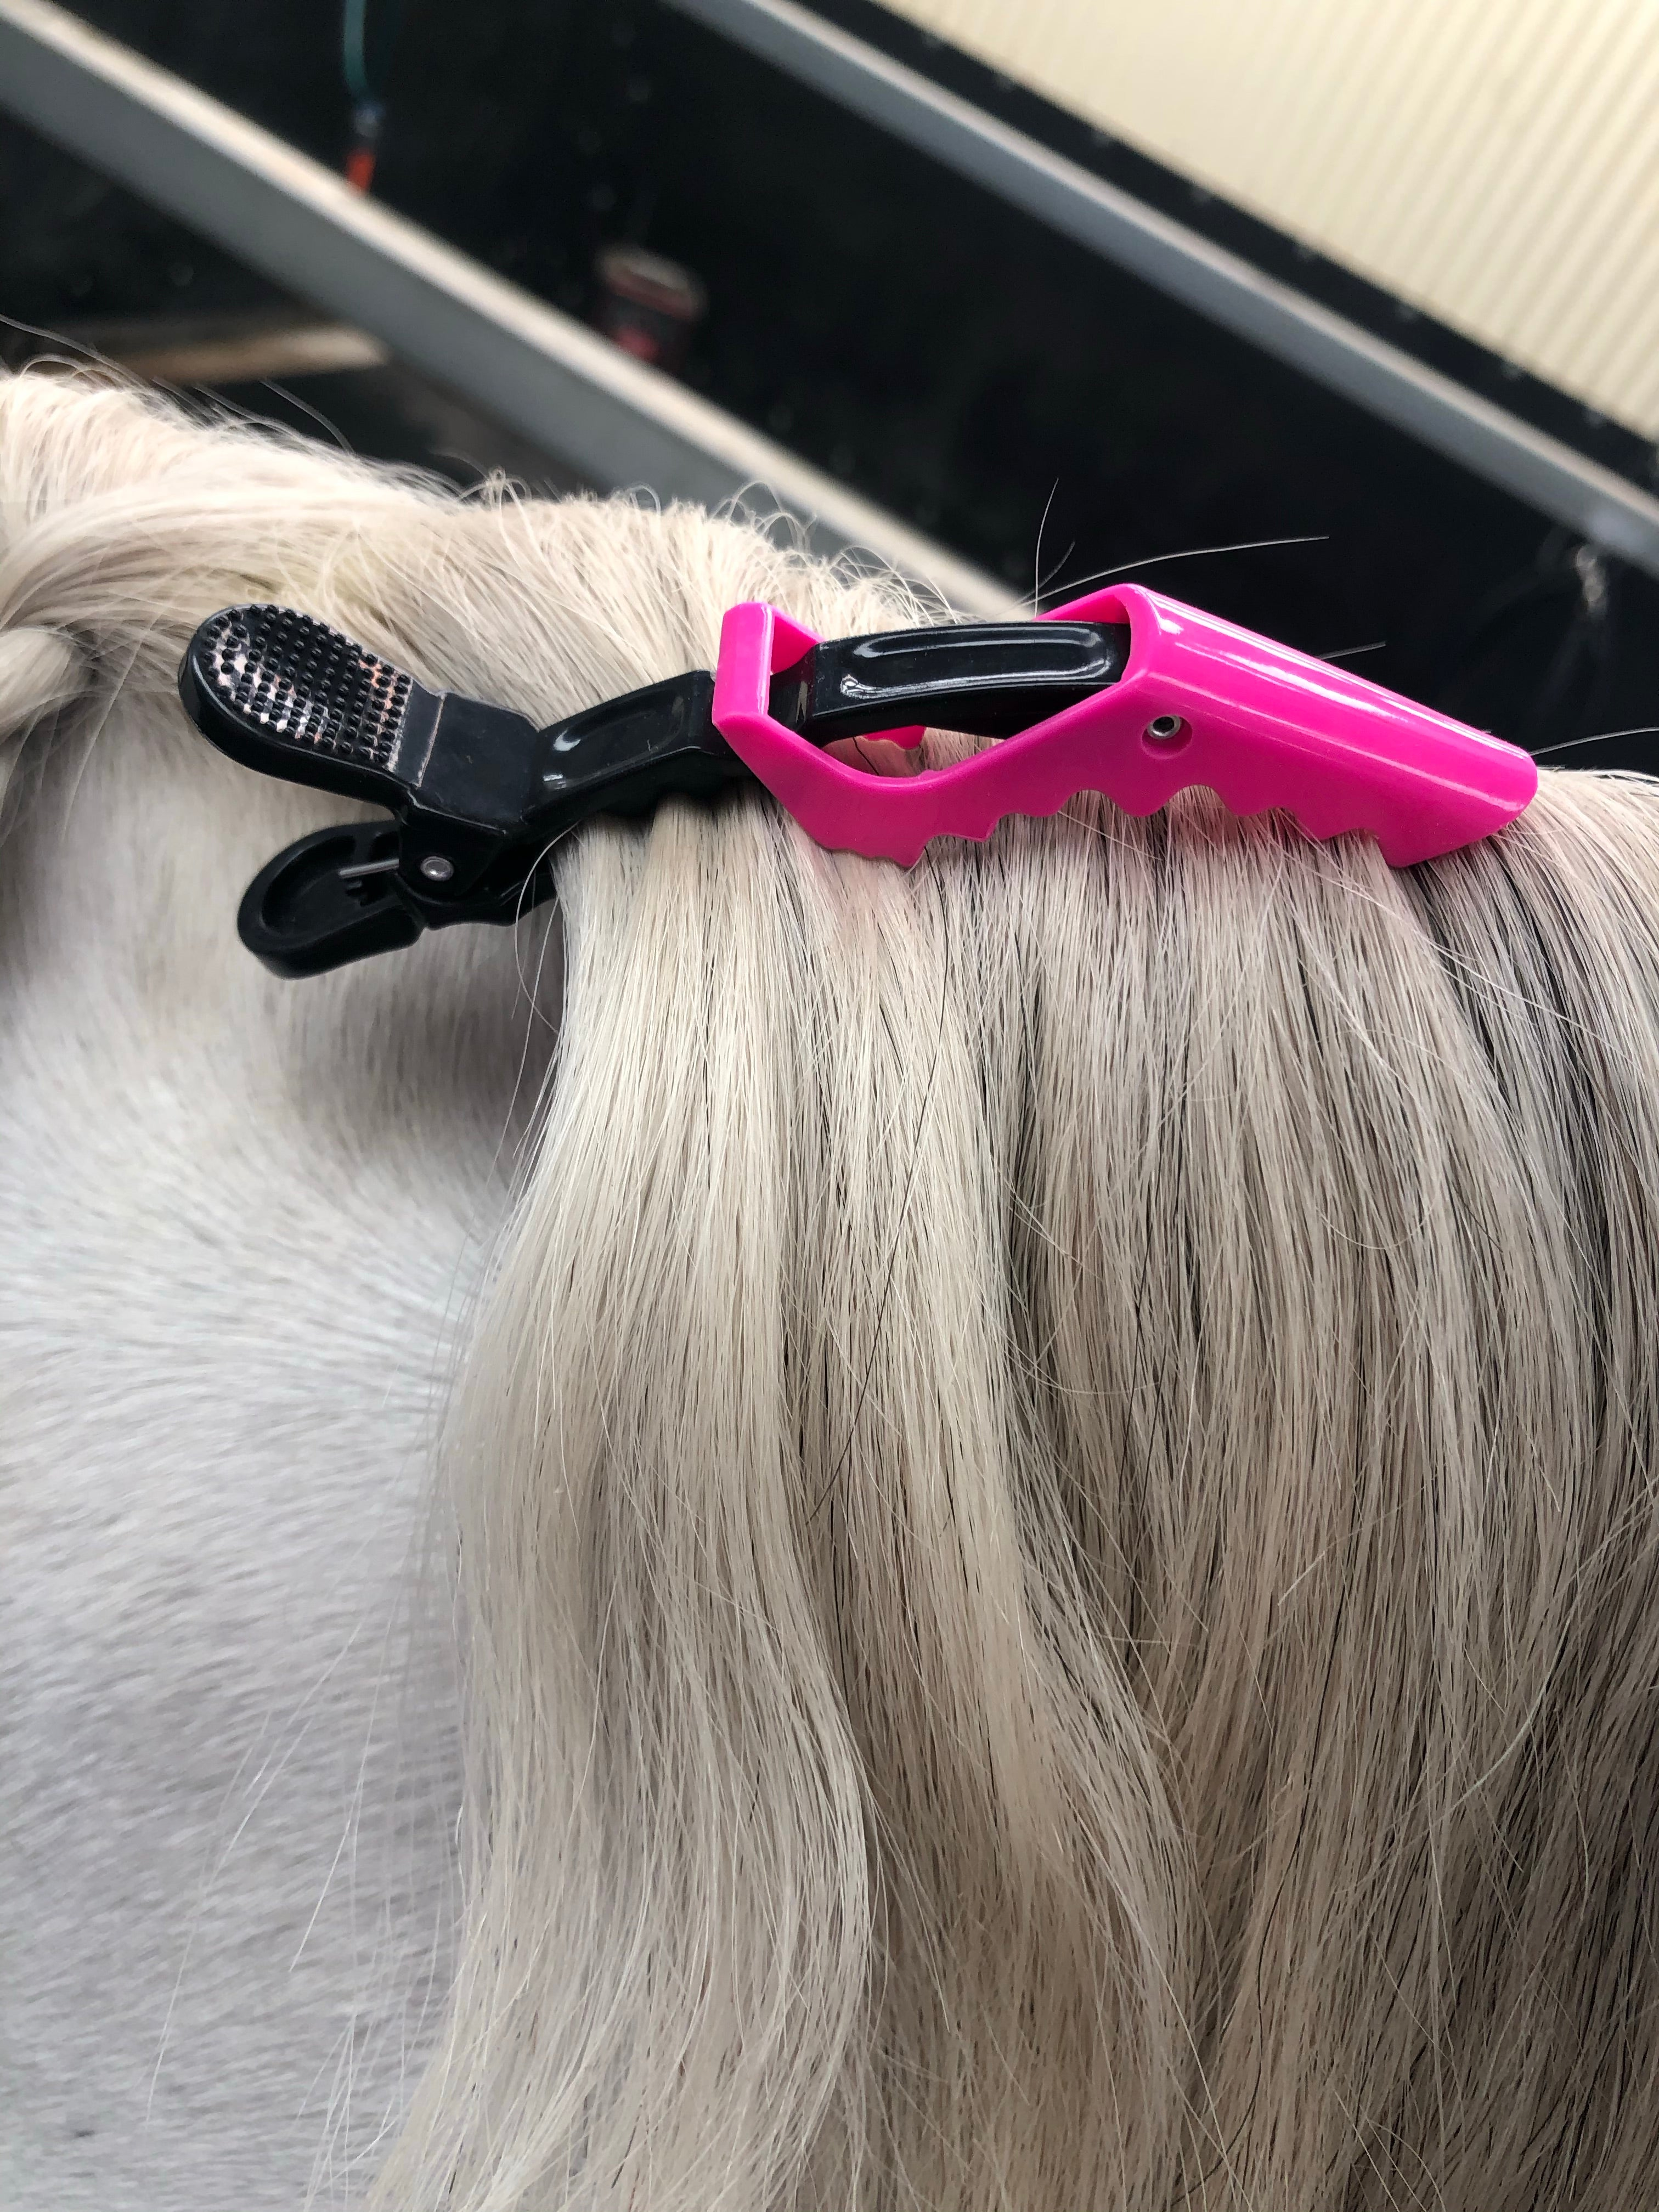 Equine plaiting clips